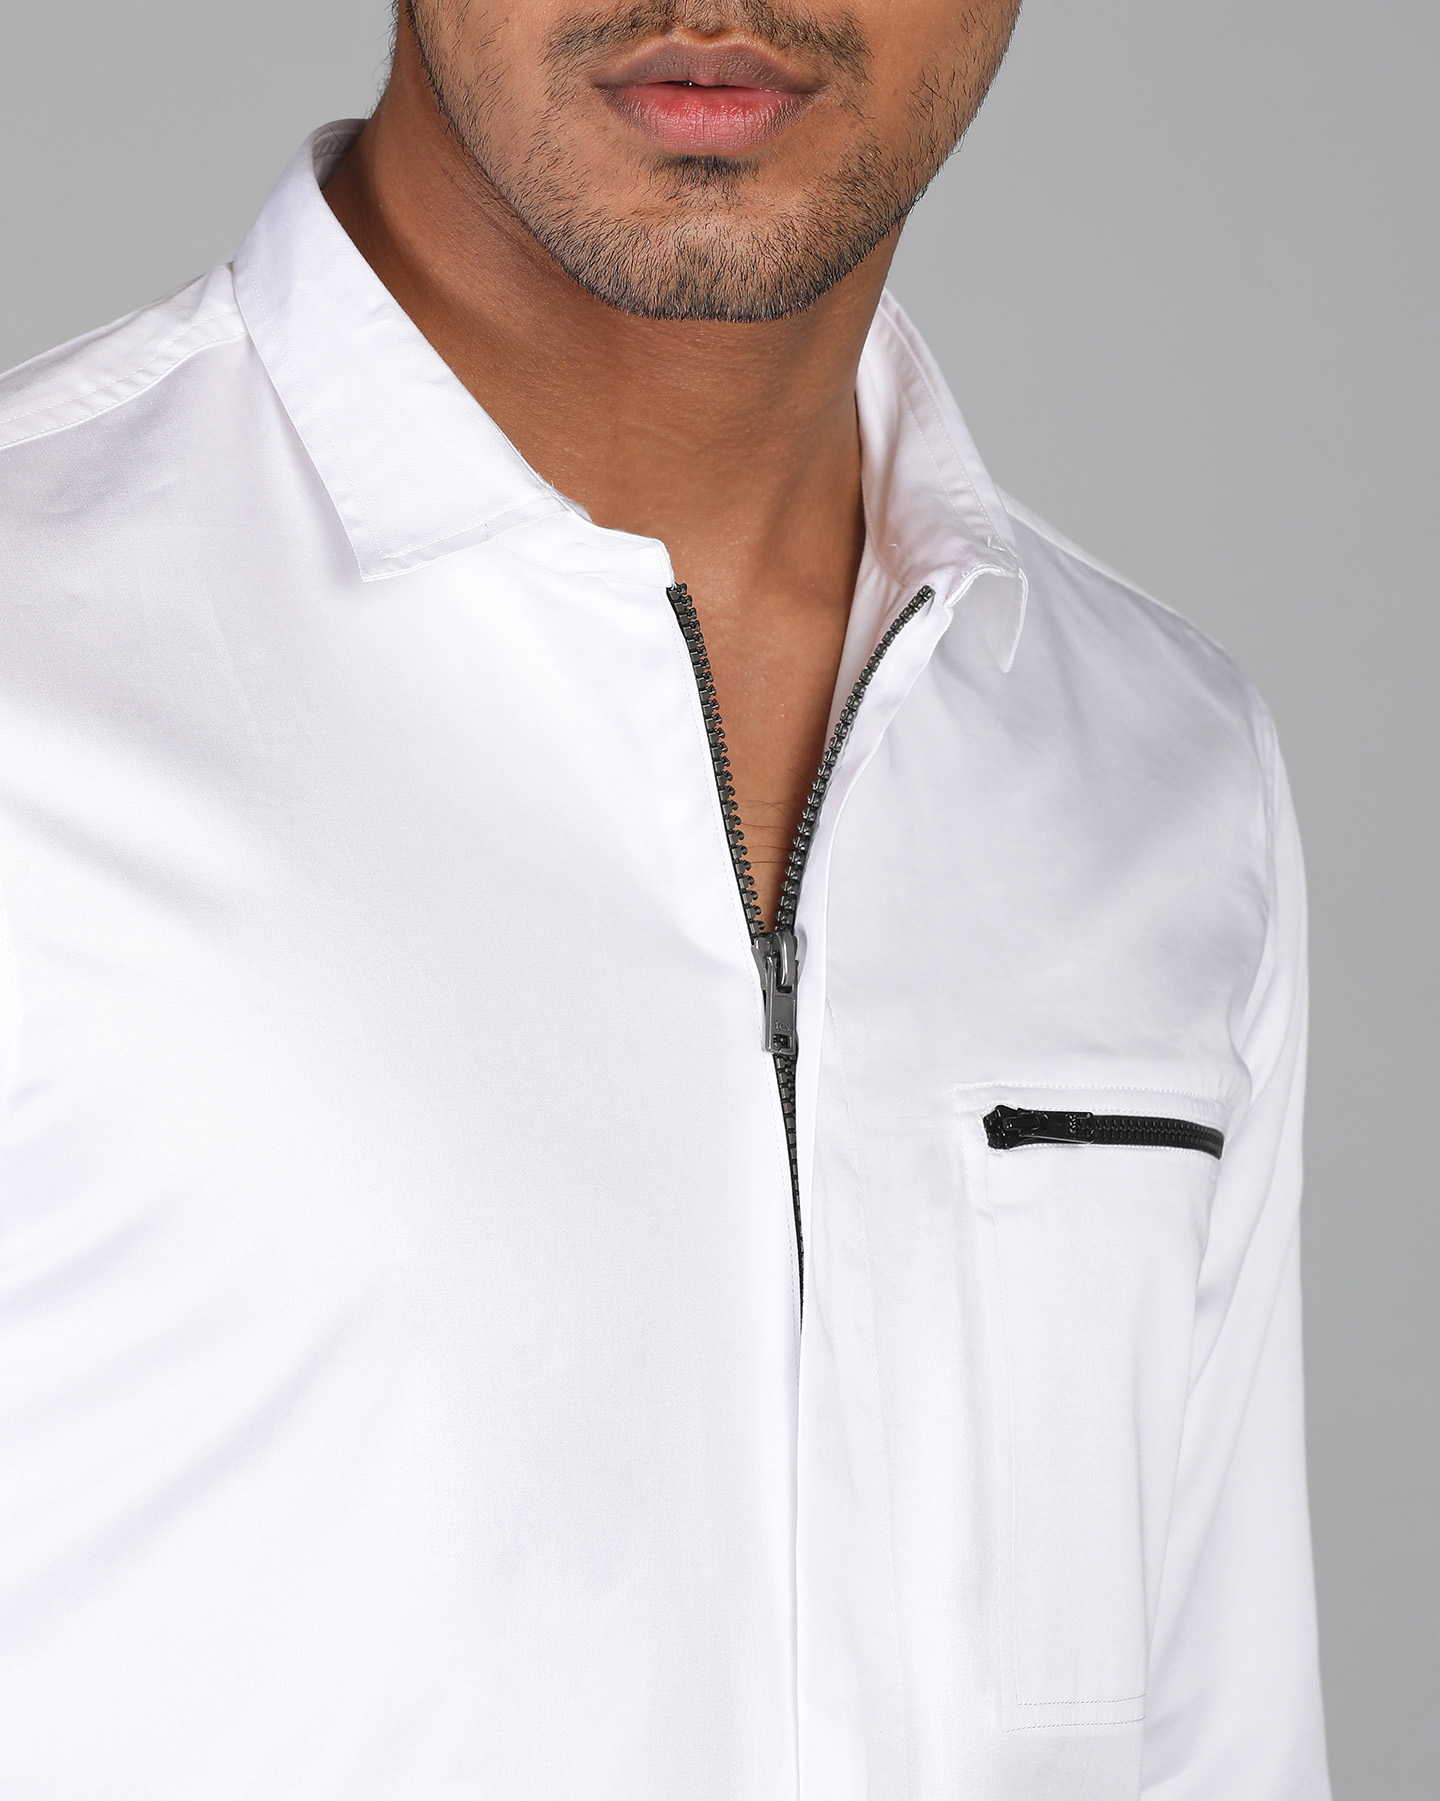 Pearl White Zipper Shirt